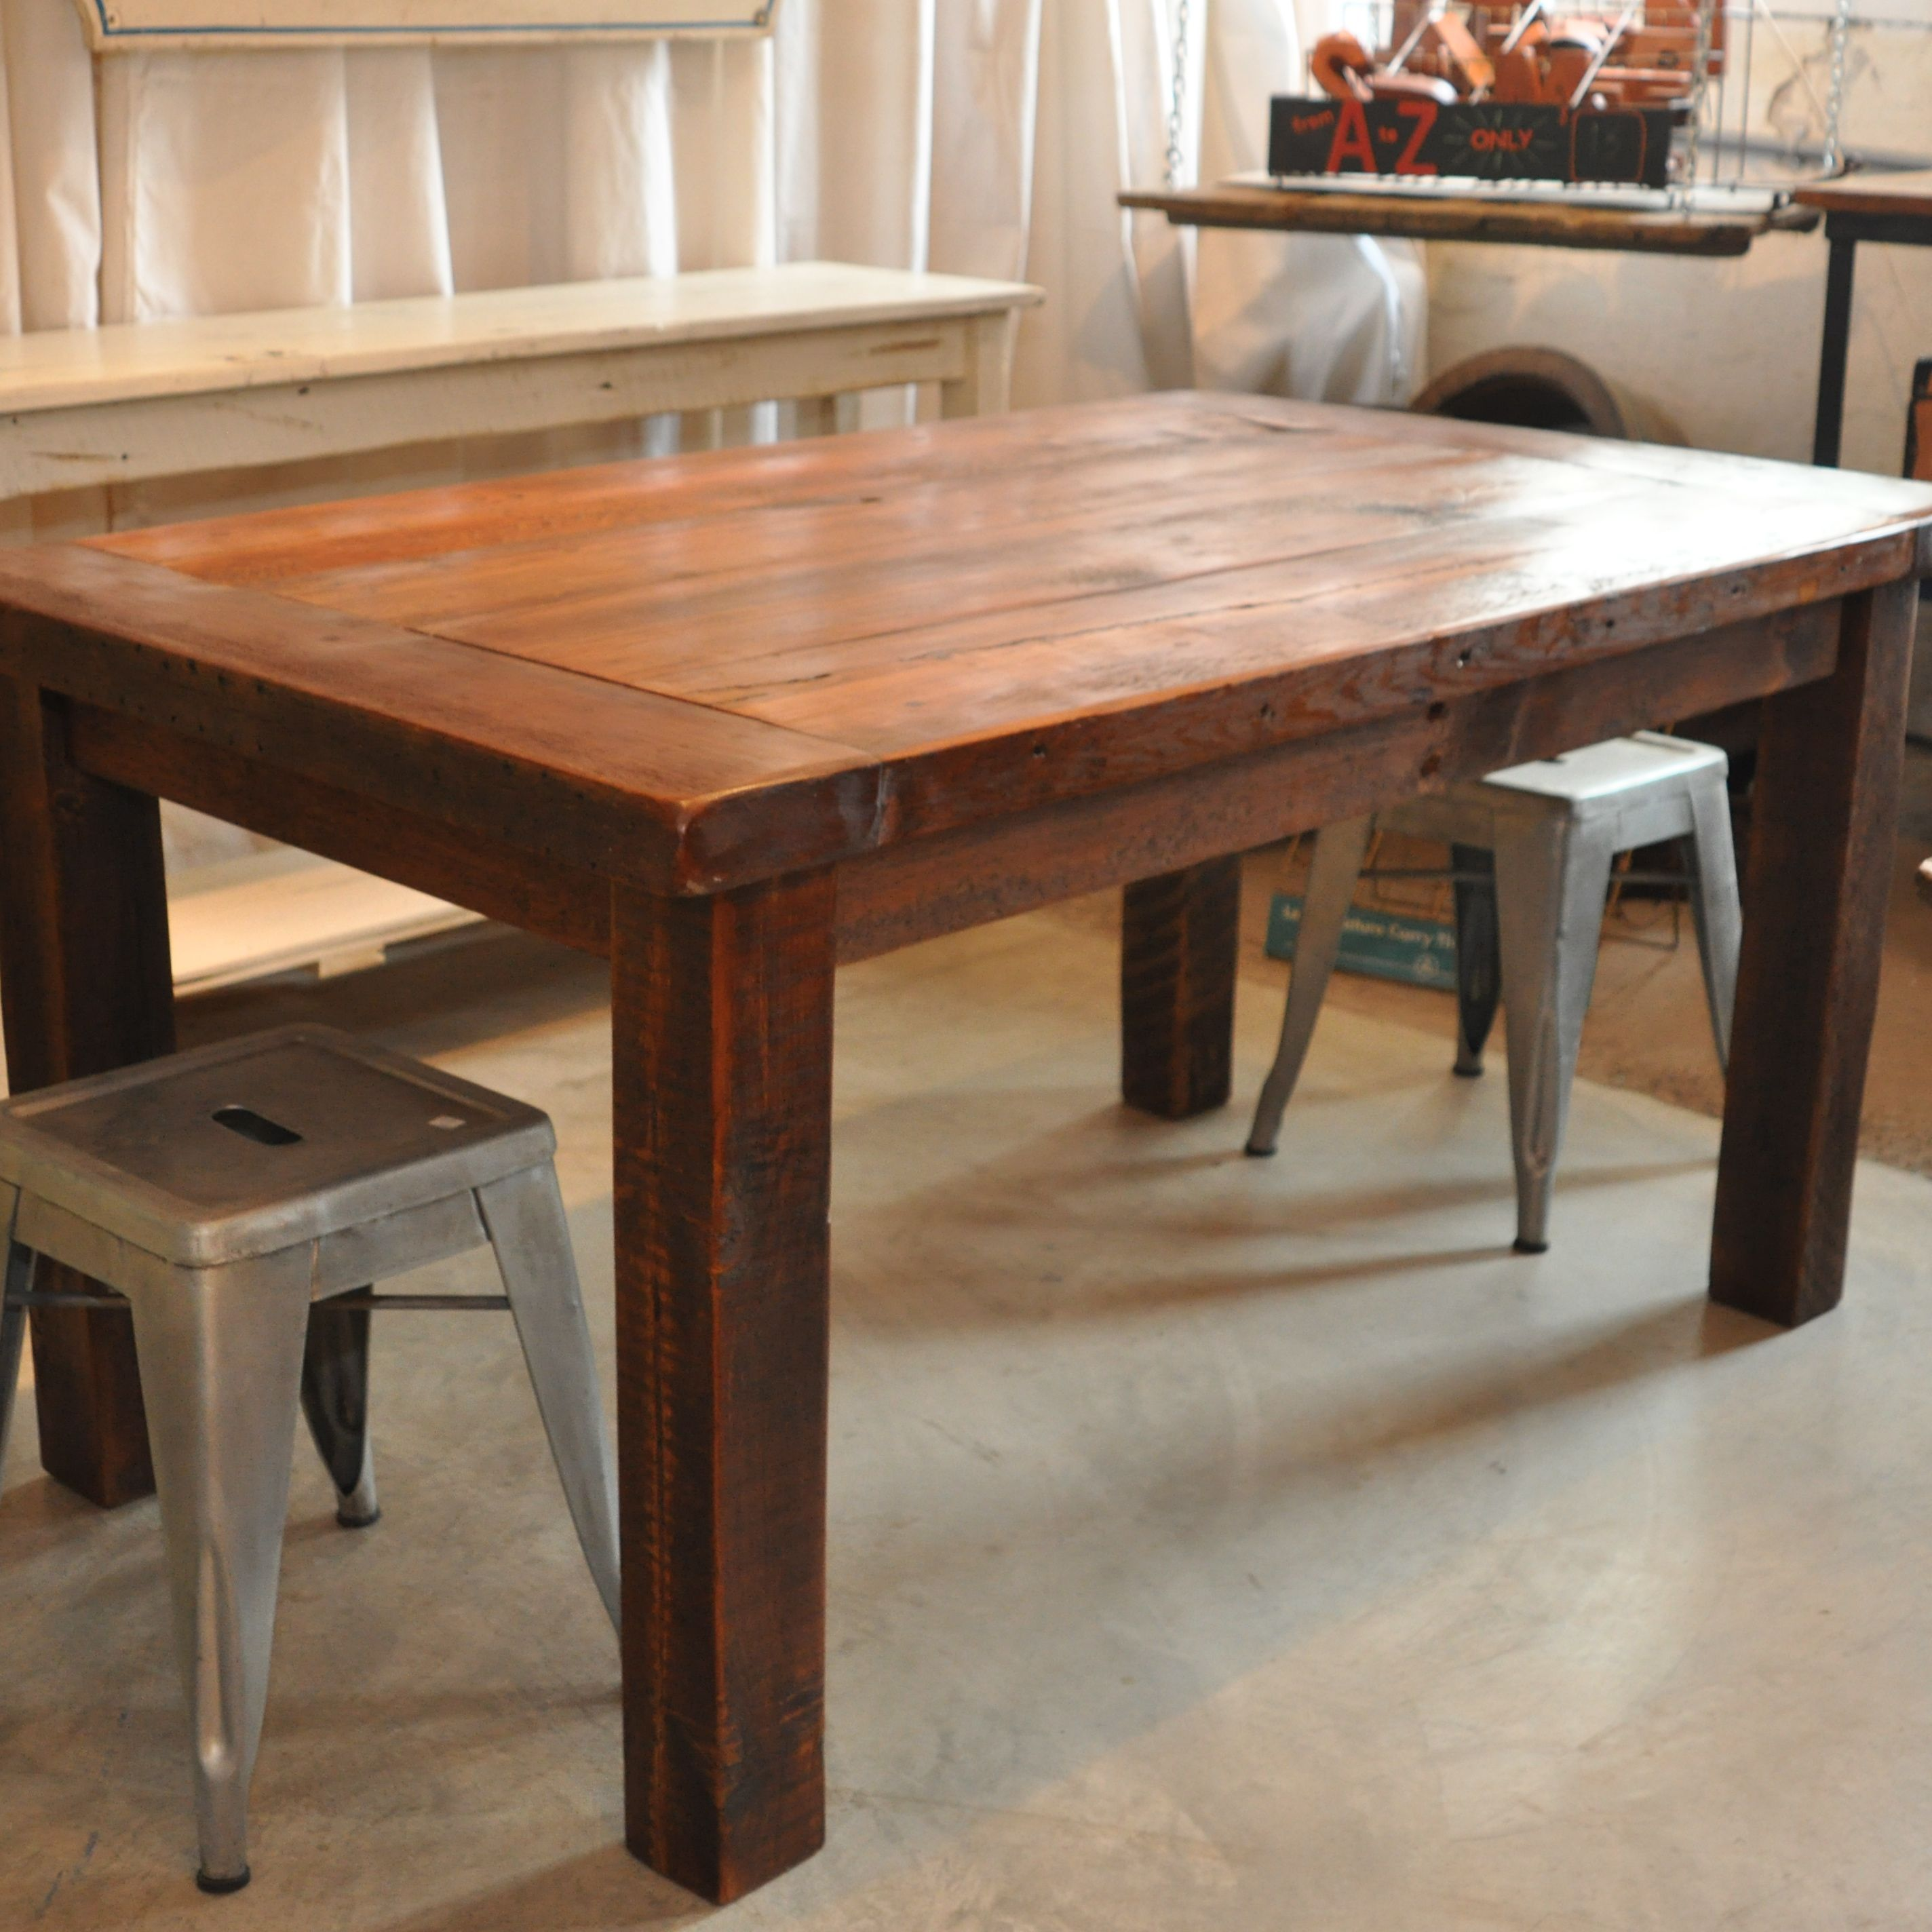 SOLD Fabulous 1800s Reclaimed Wood Dining Table For Sale At Madison Mabel In Frederick